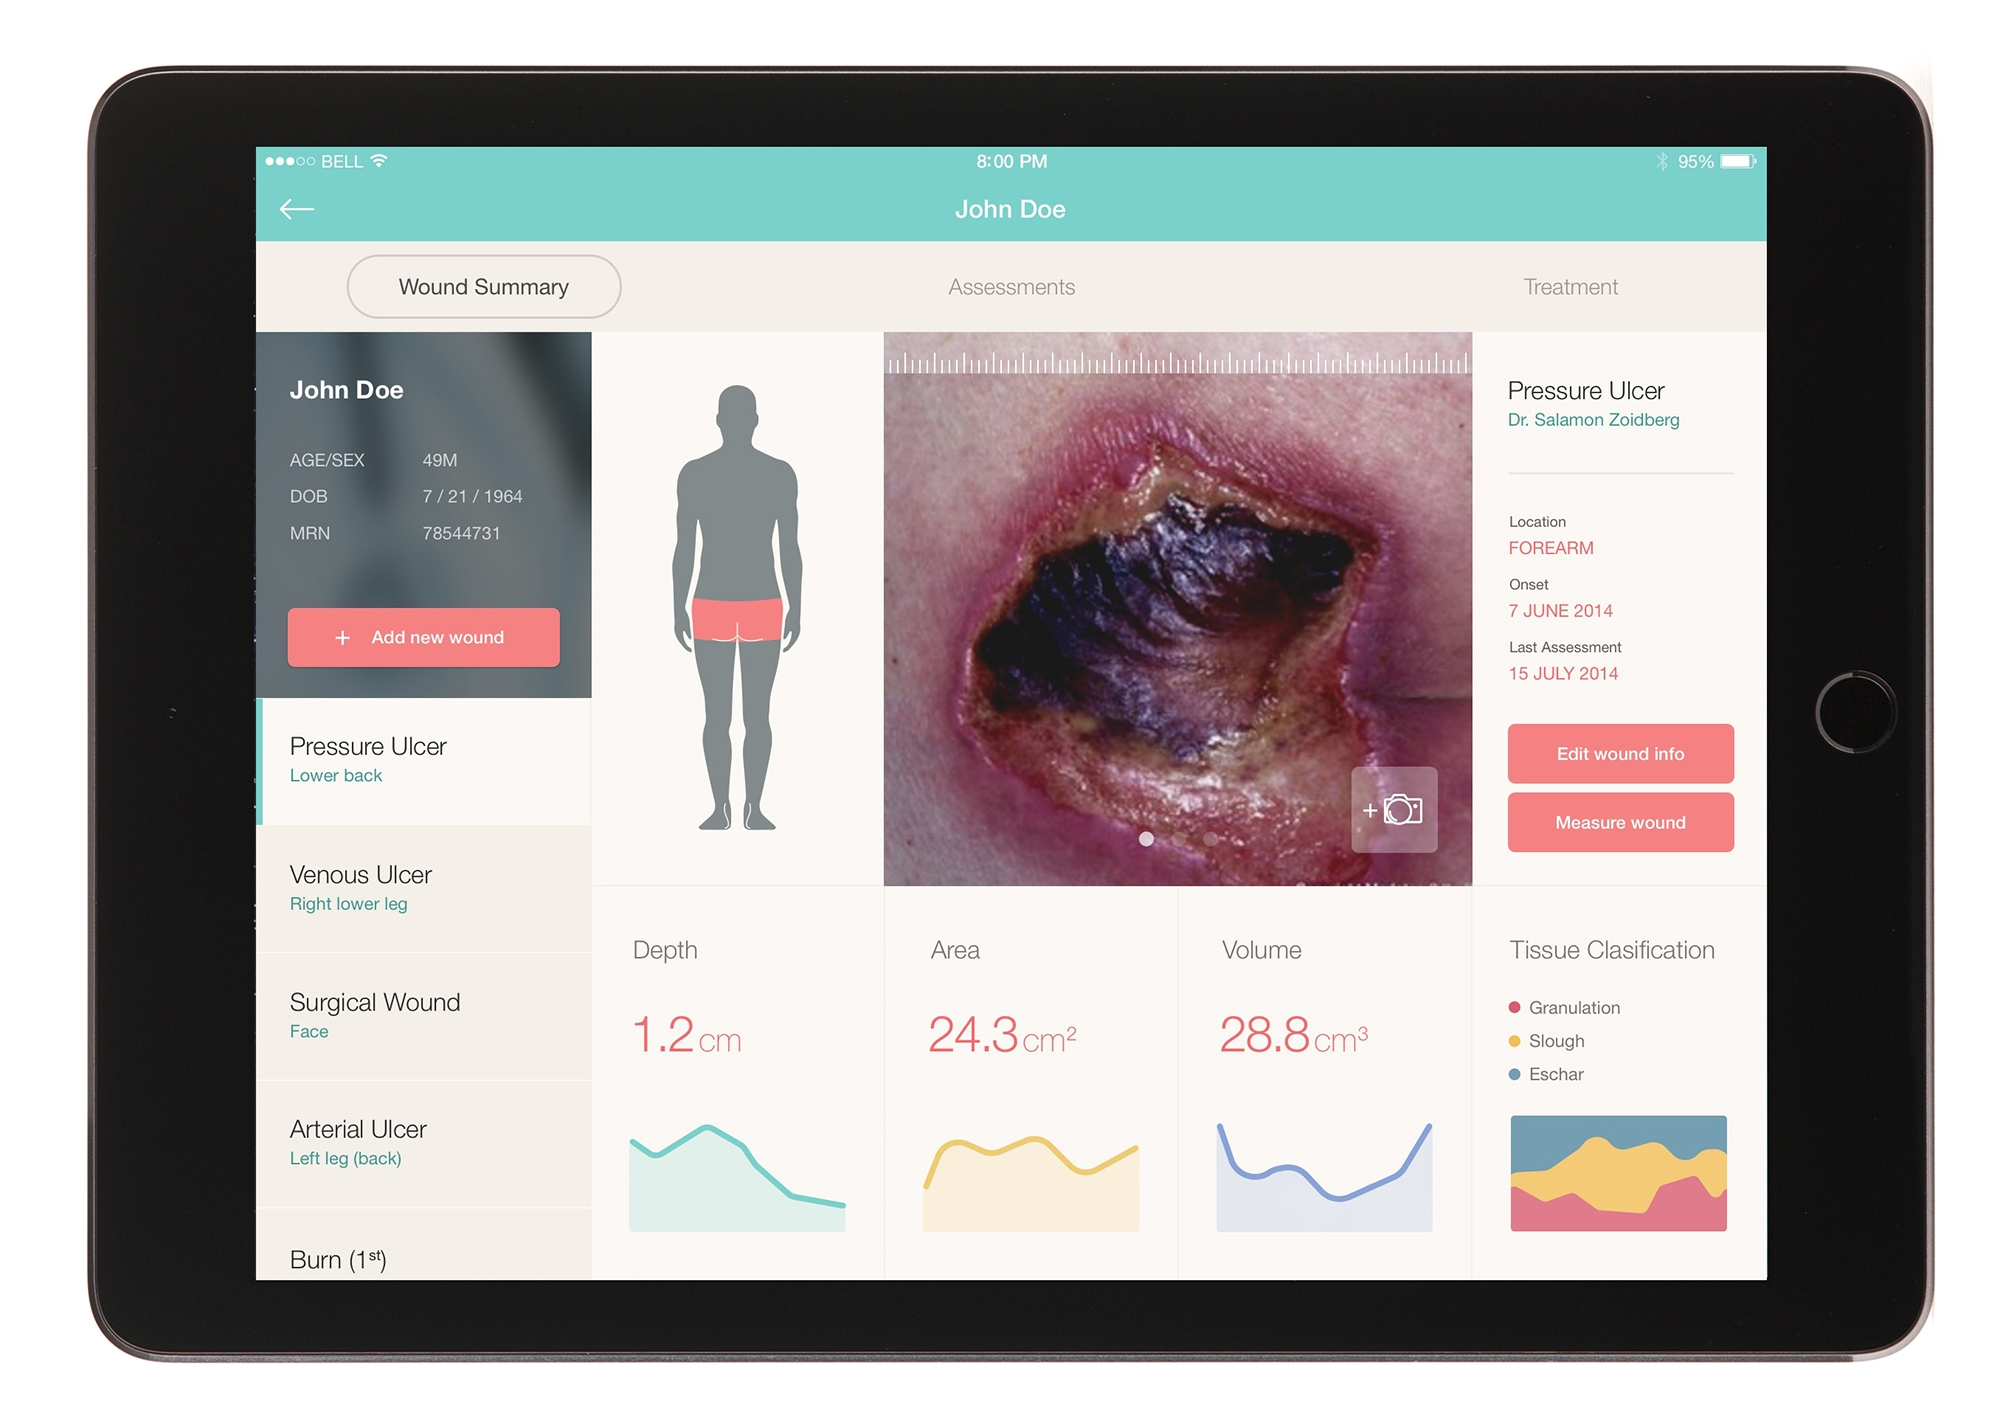 A new app allows data and images about a wound to be displayed on an iPad.